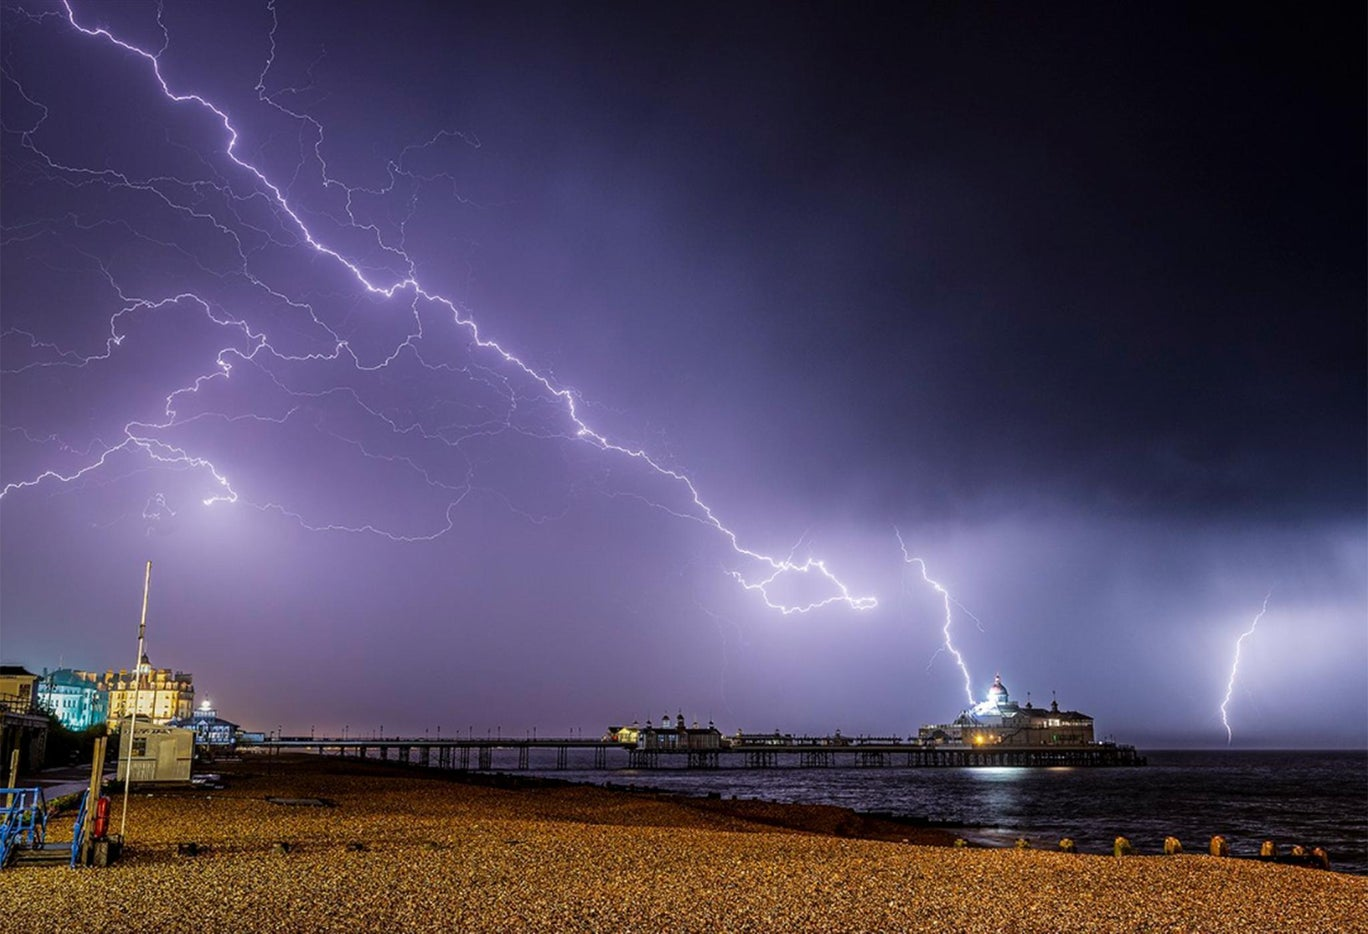 eastbourne-lightning-1000-14.jpg?width=1368&height=912&fit=bounds&format=pjpg&auto=webp&quality=70